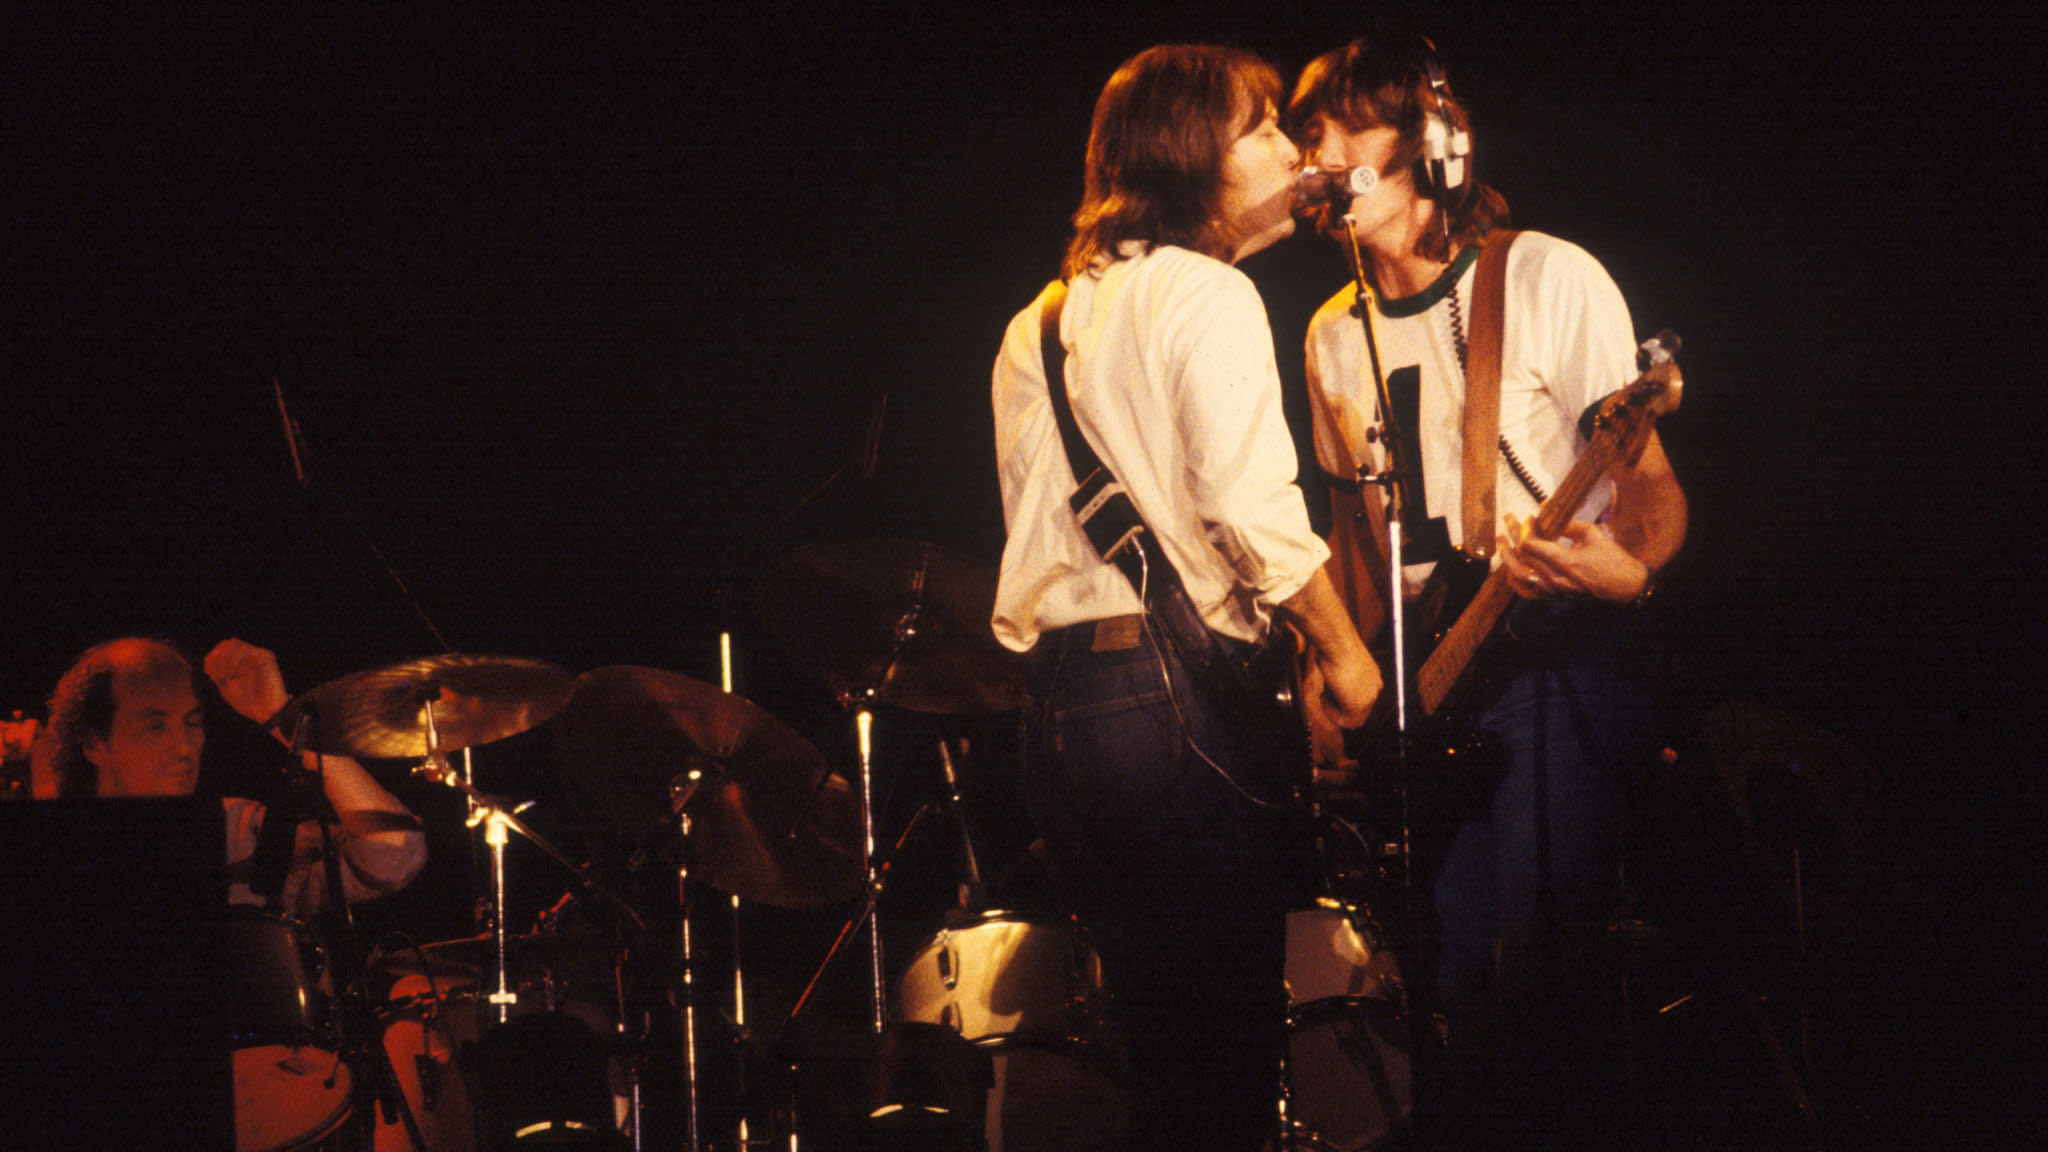 Wish You Were Here — Pink Floyd's song of self-scrutiny has